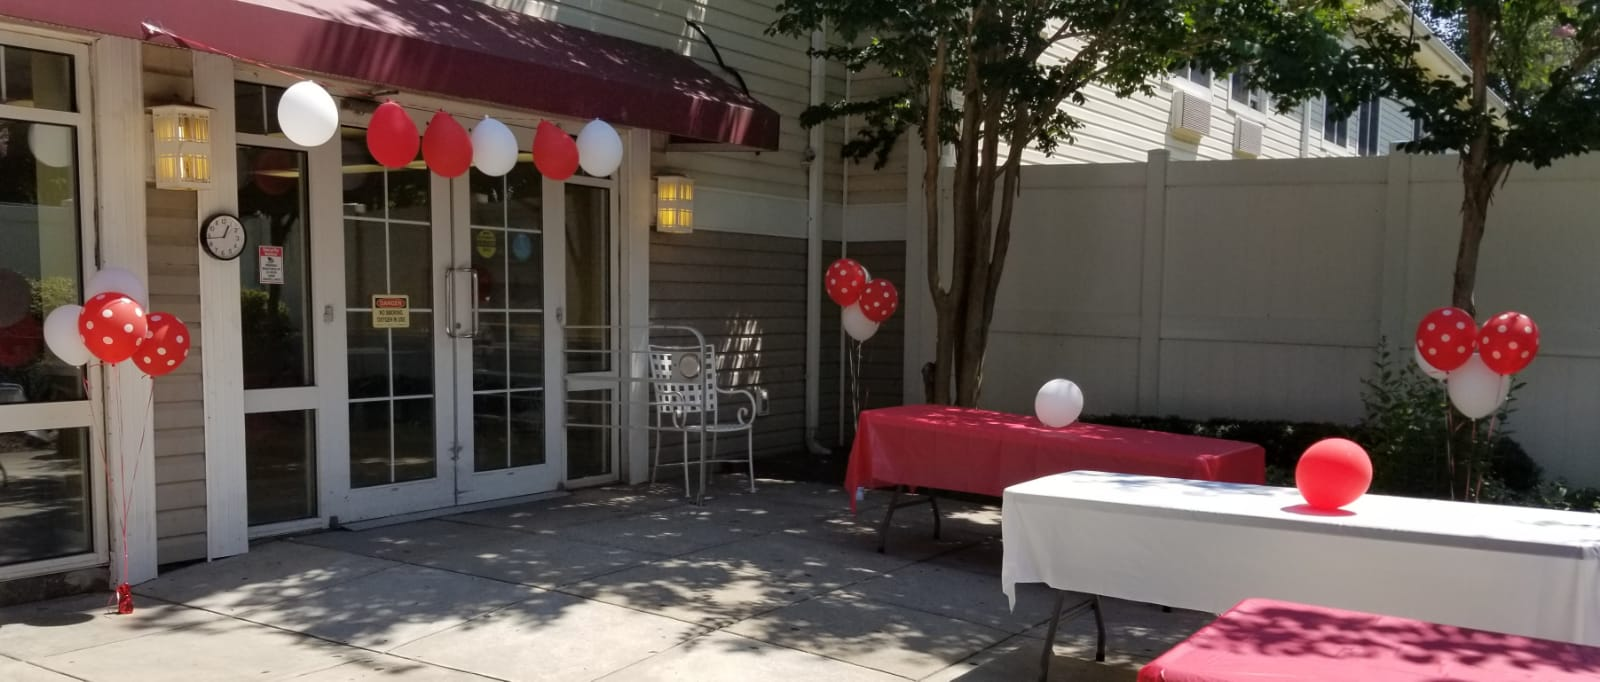 Westgate-Hills-Resident-and-Emplyee-BBQ-12